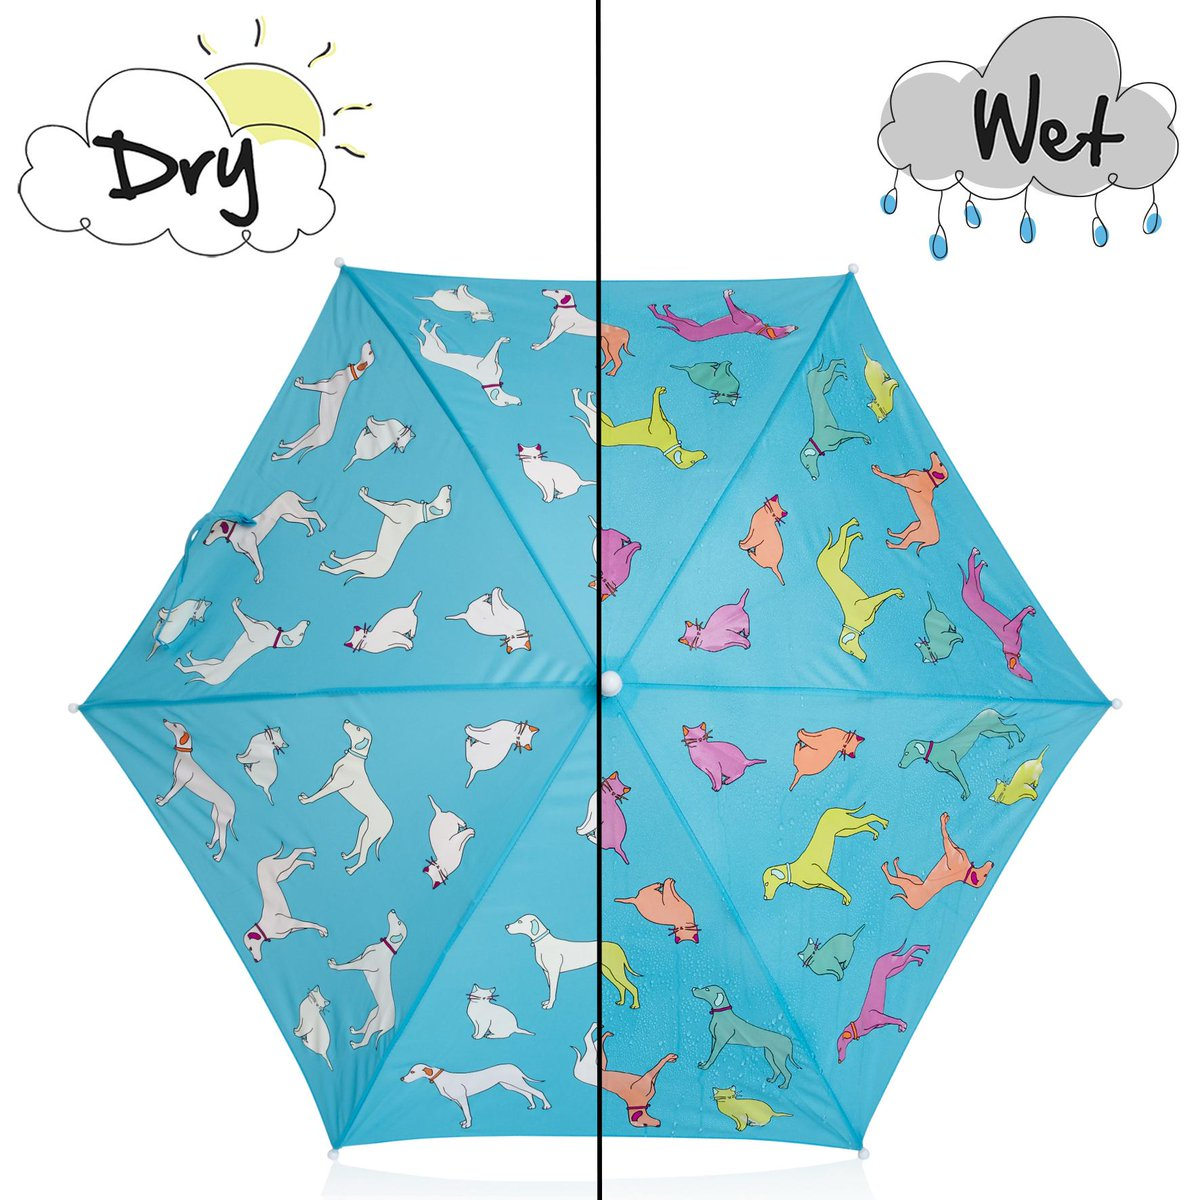 #WIN a Colour-Changing Umbrella from @hollyandbeau! 3 designs to choose from! Follow & RT! #Comp ends 10am 09/04/15 http://t.co/Fa2xXsVJcs